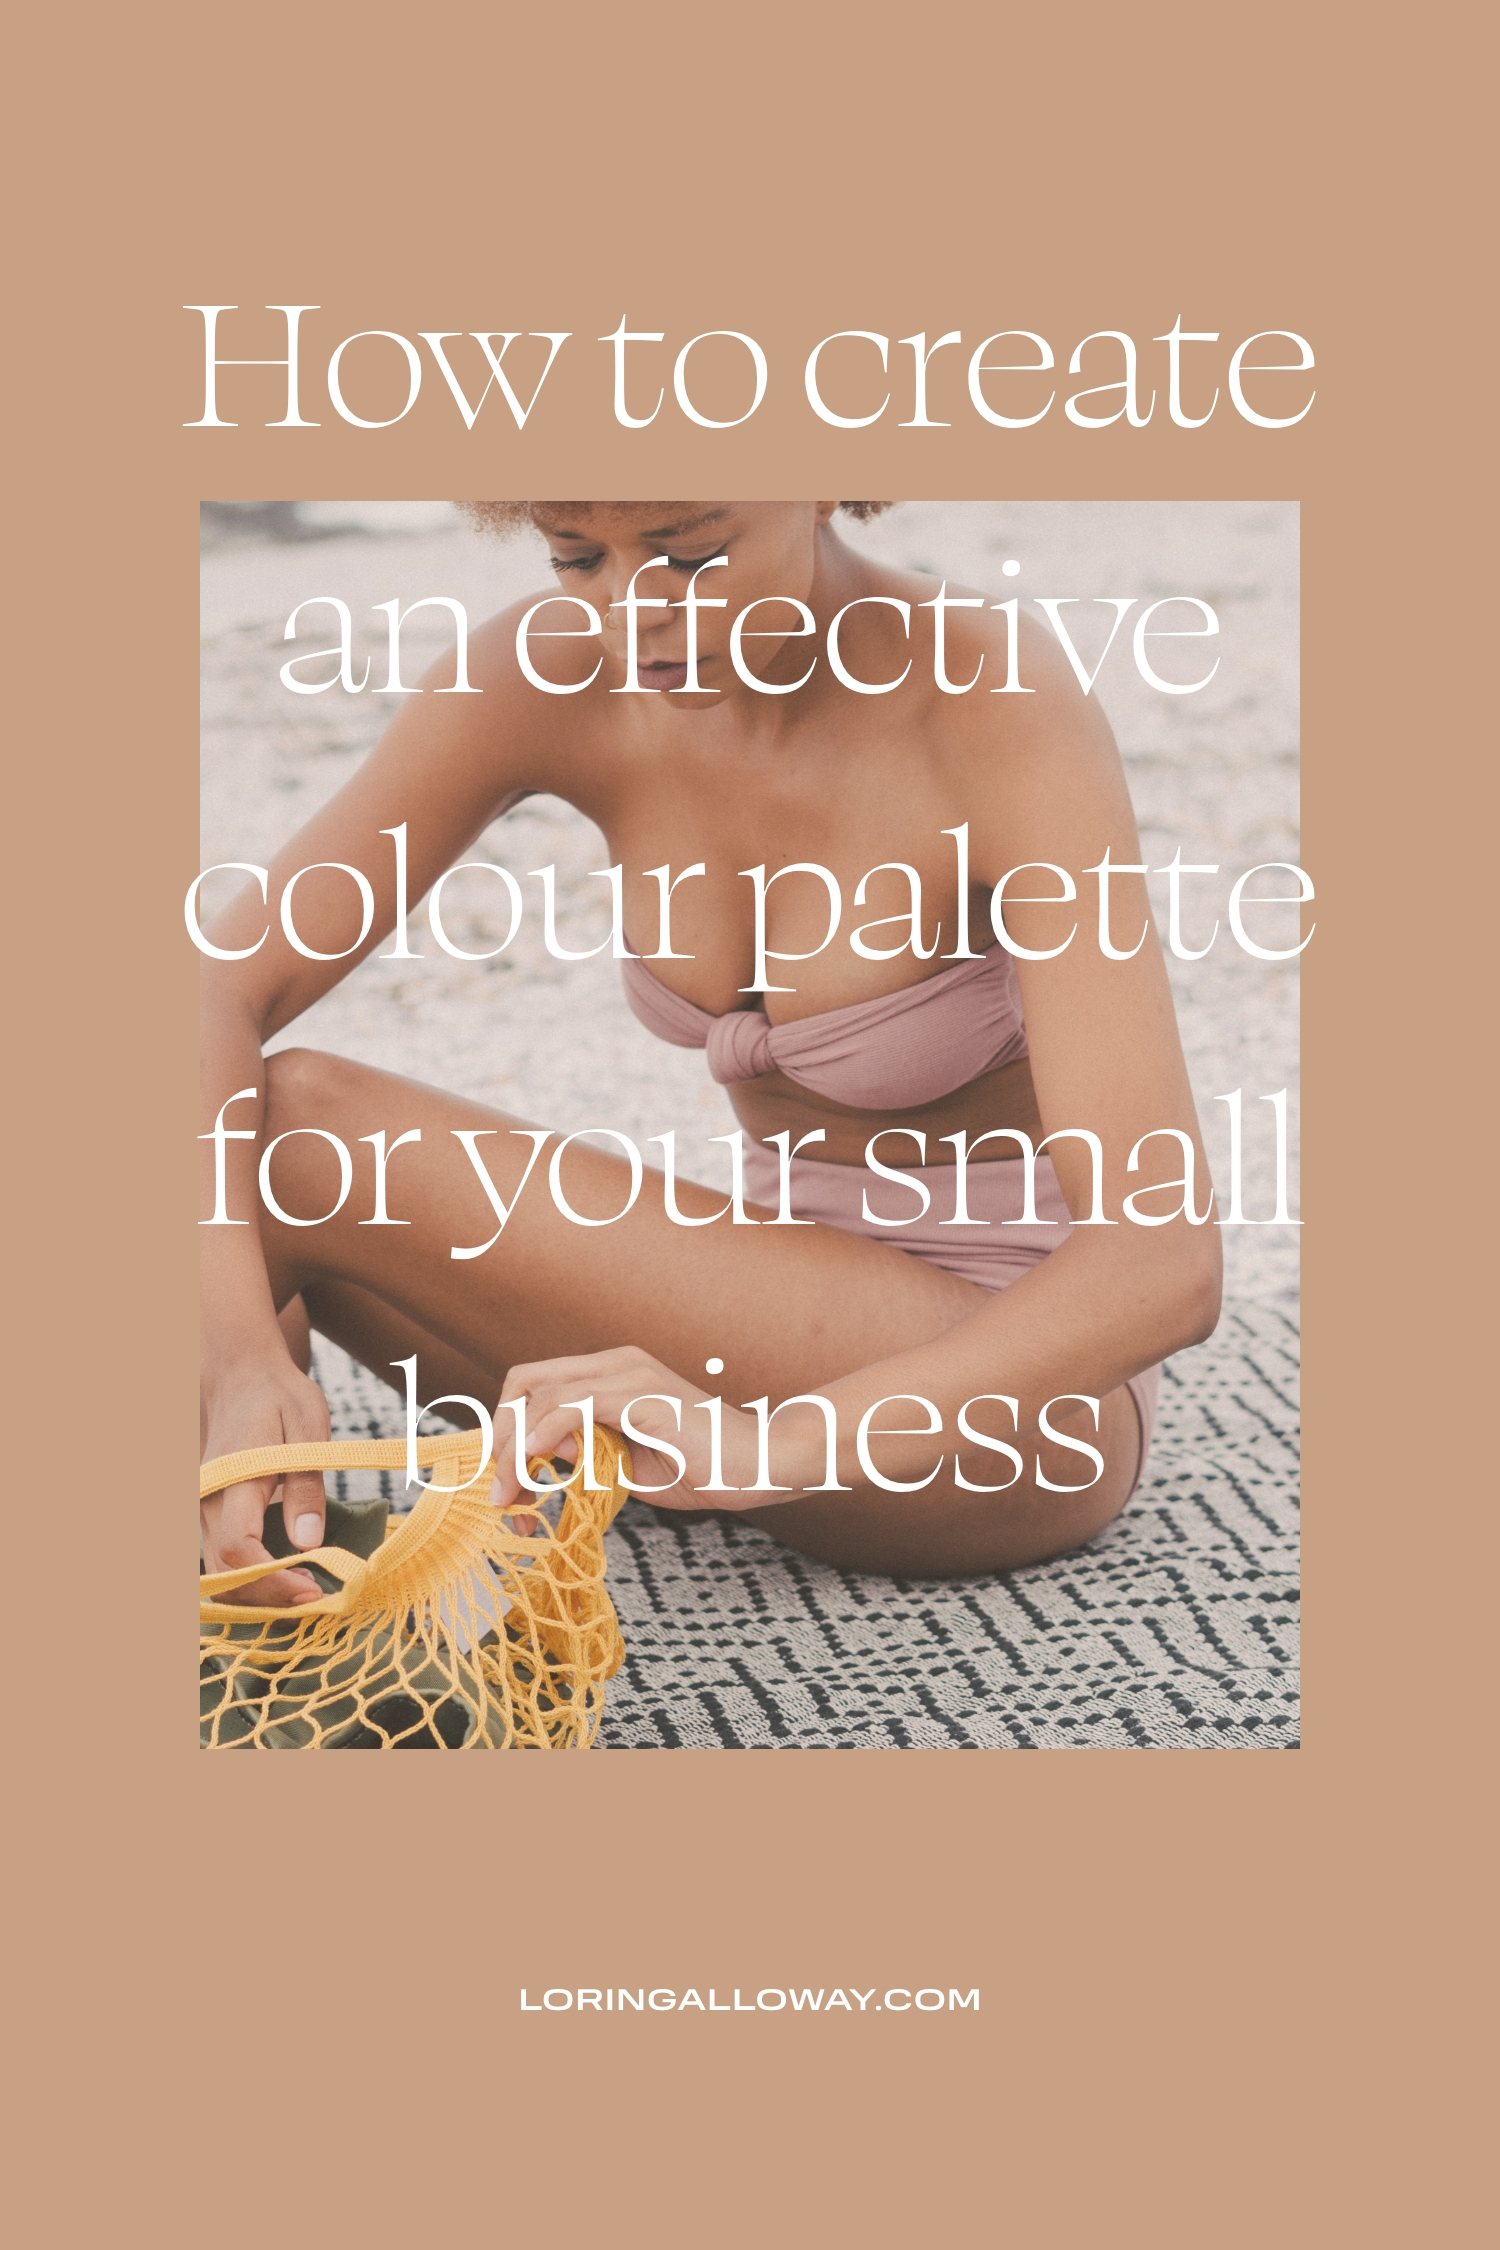 Download free brand designer approved colour palettes for your creative business DIY projects